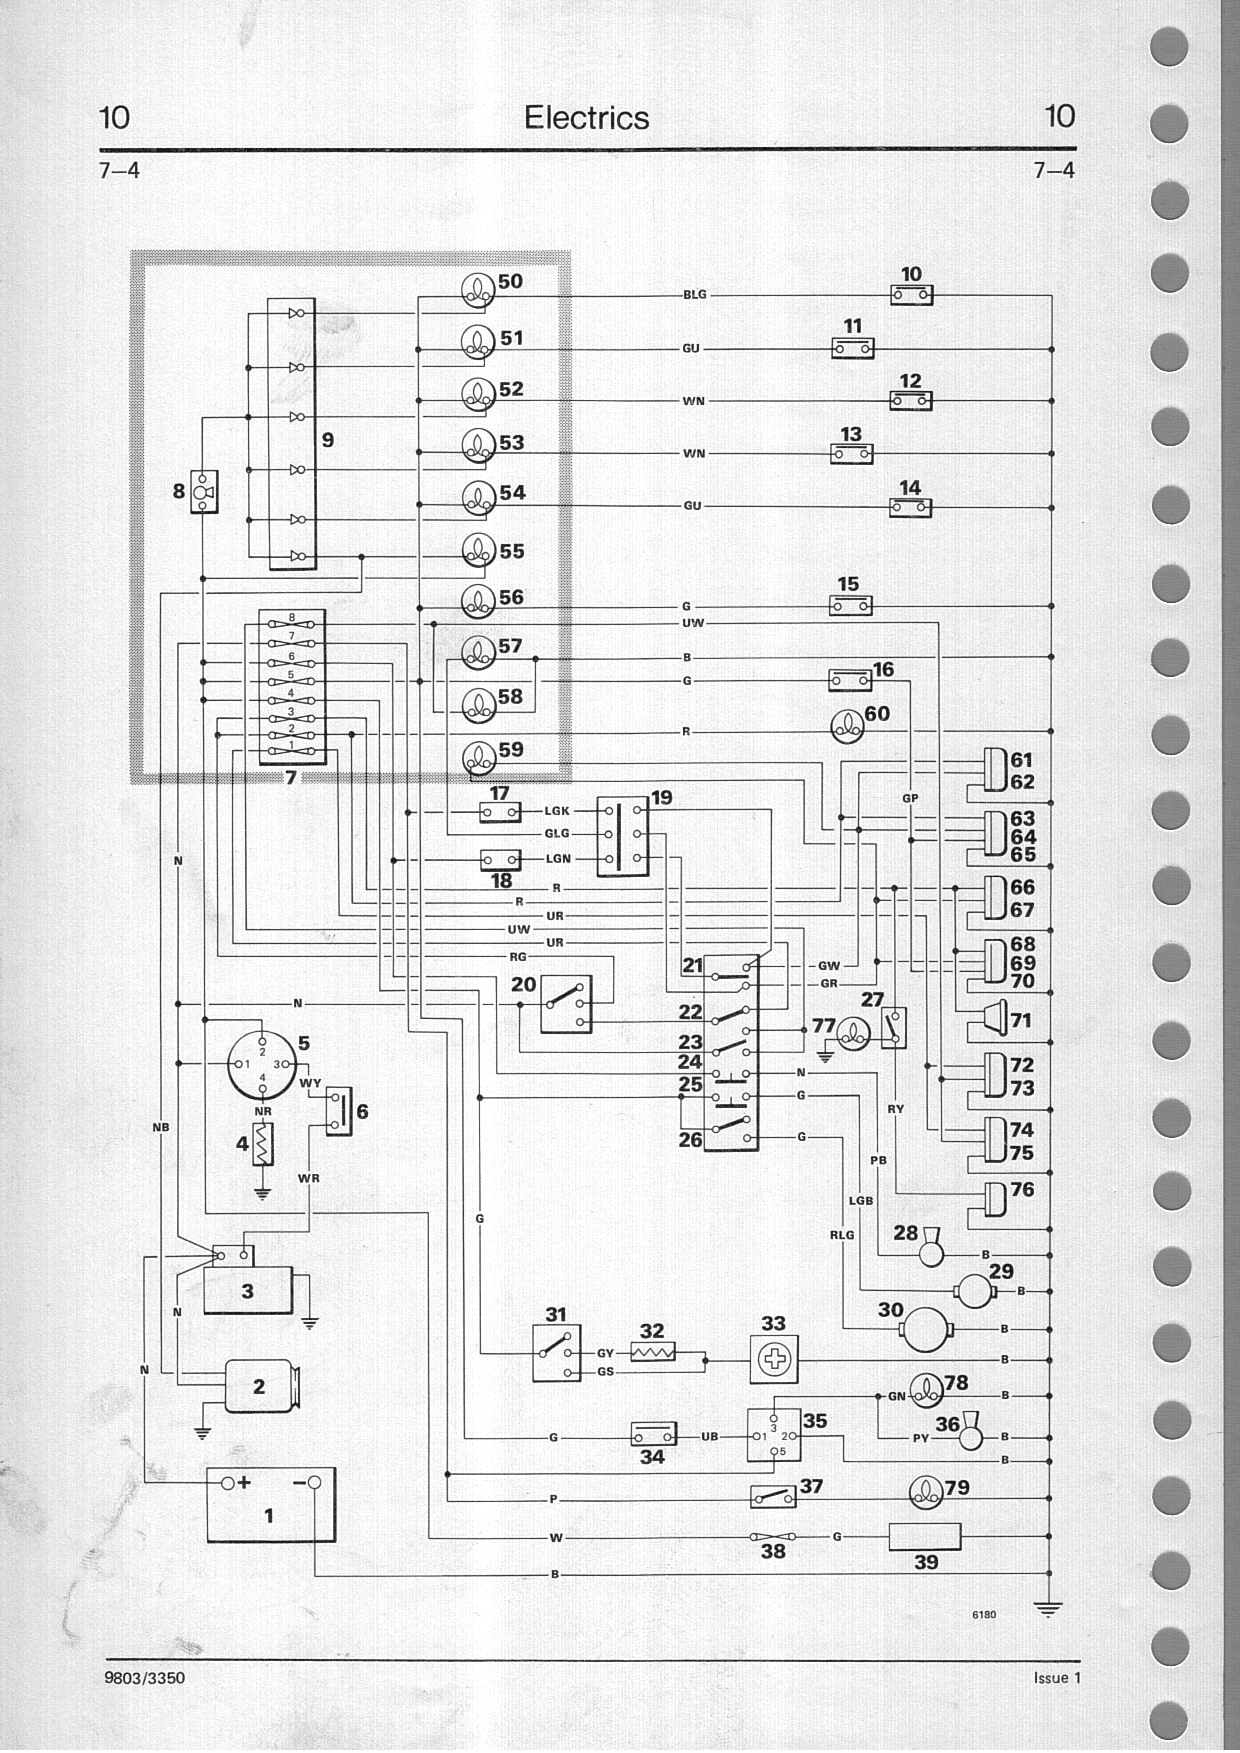 Bobcat Tube Fuse Diagram   Wiring Diagram point answer   answer ...